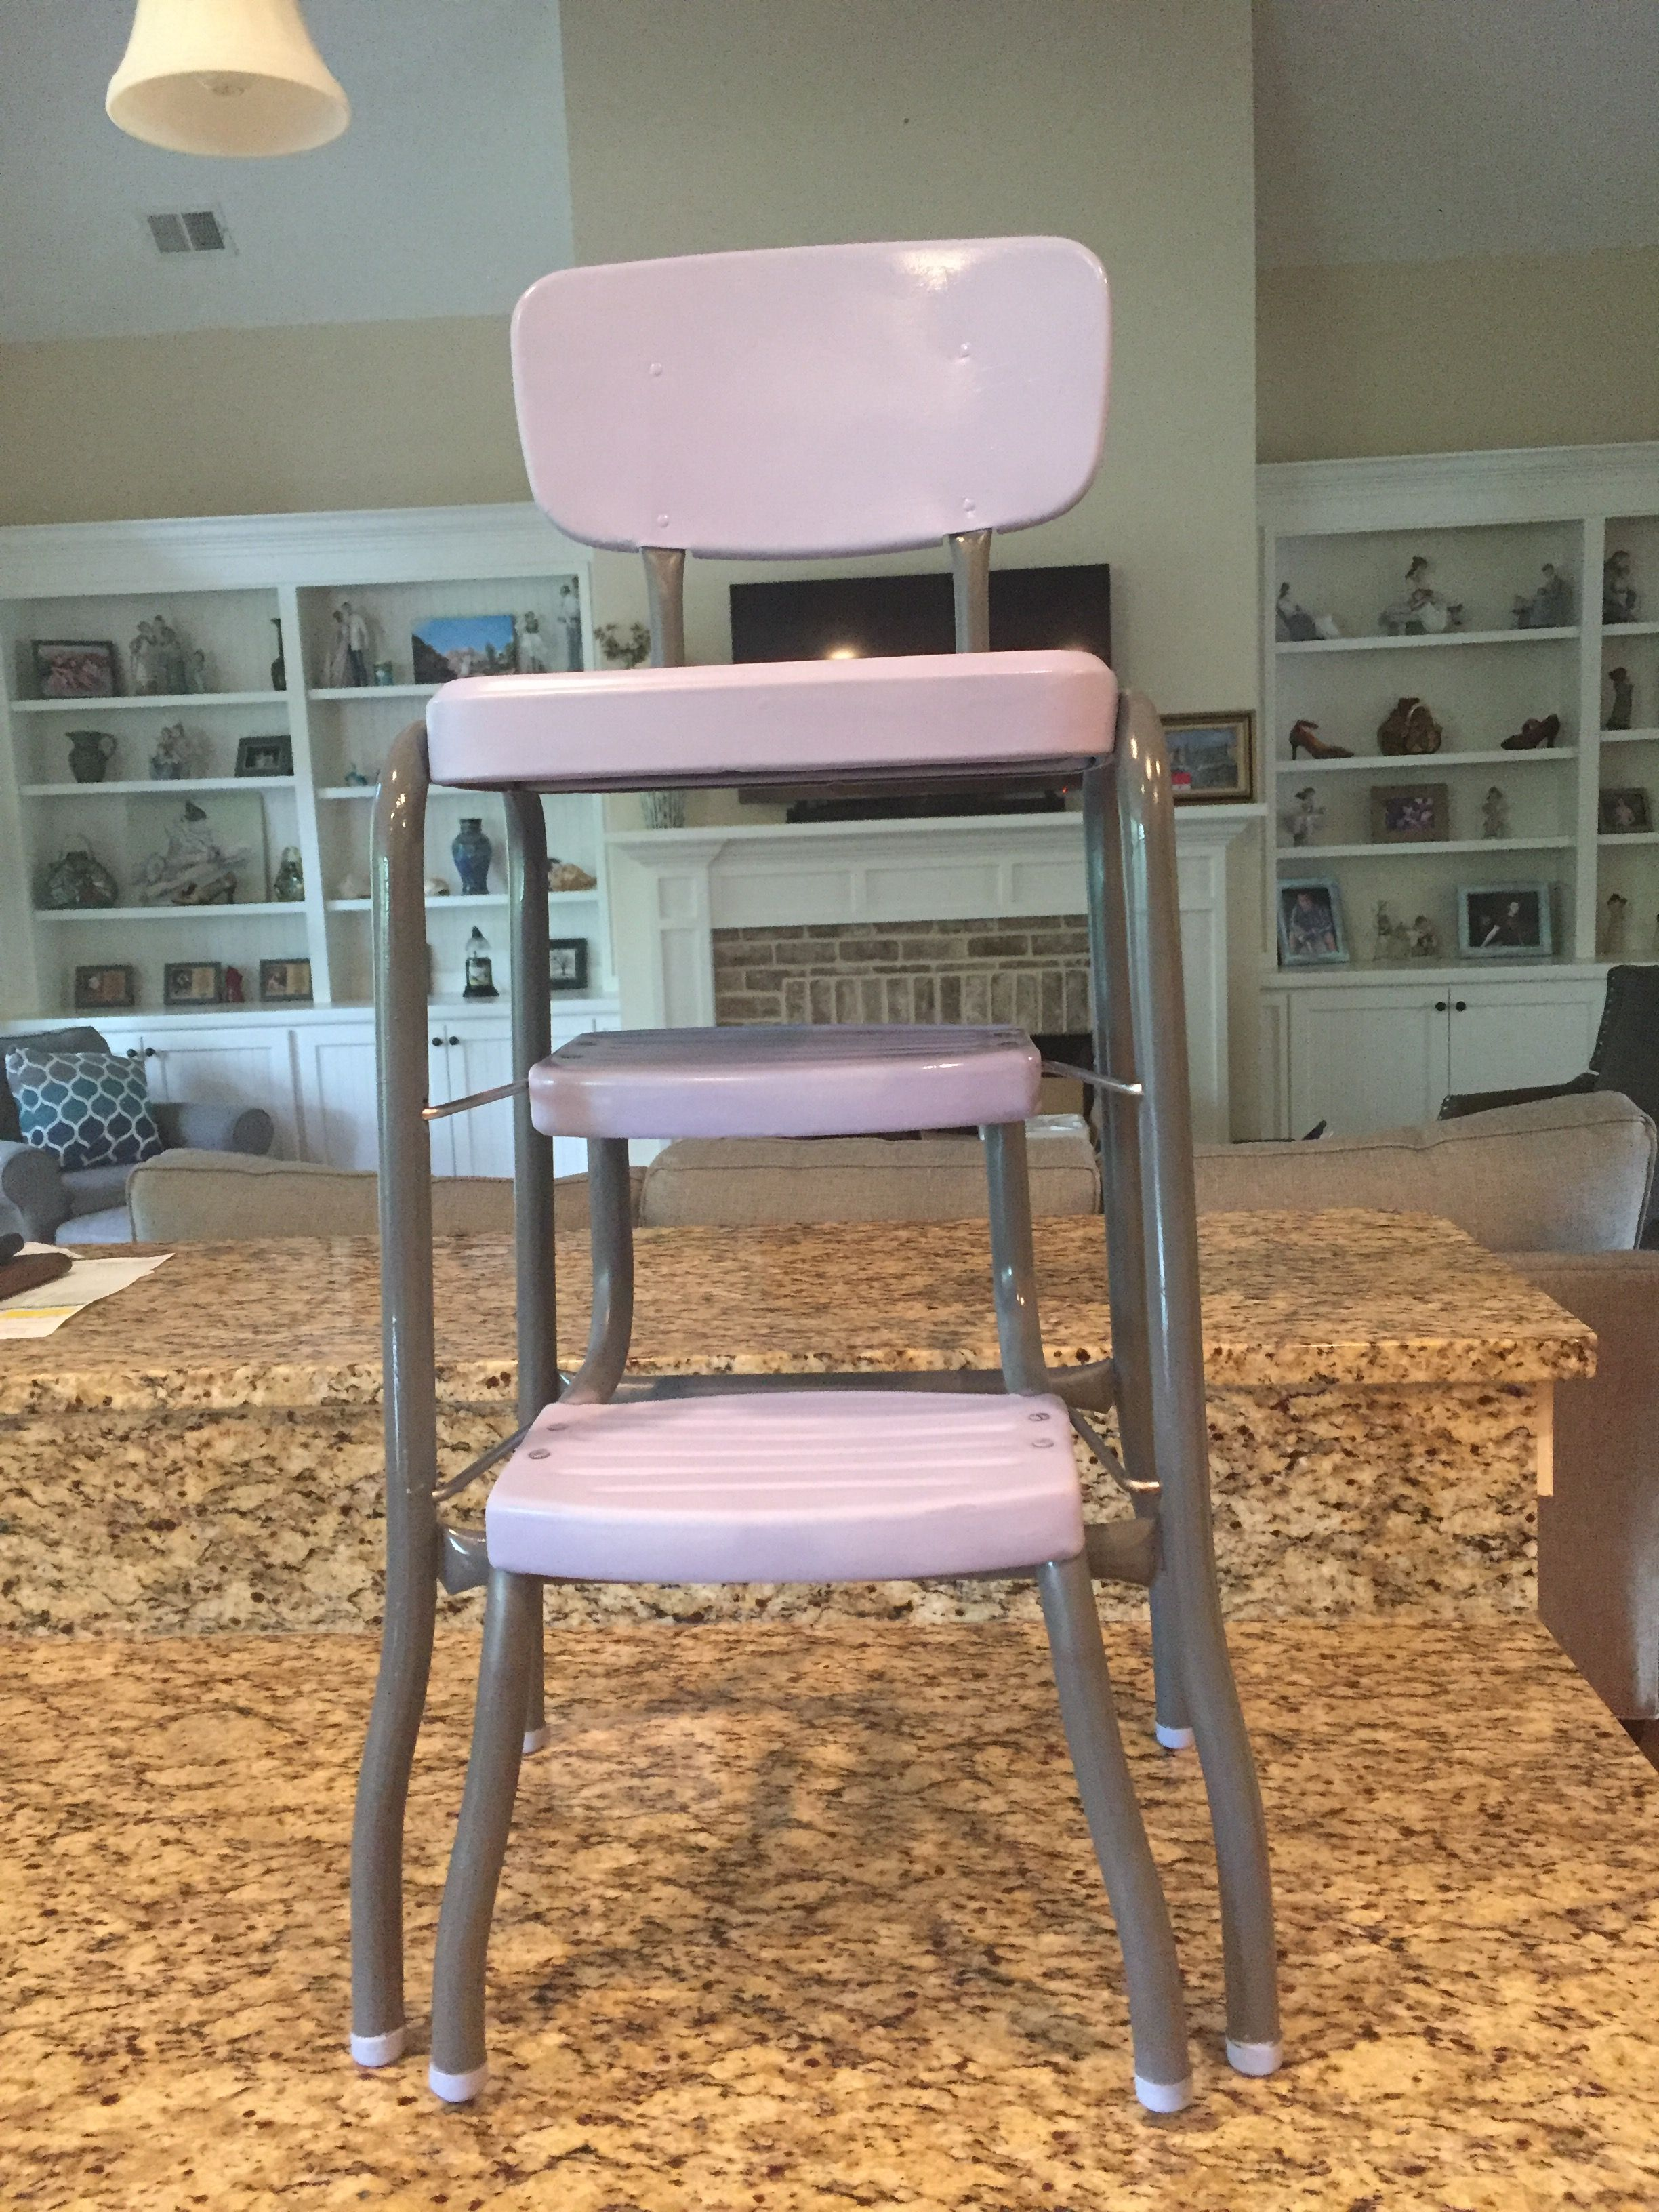 Refurbished old step stool Farmhouse dining chairs